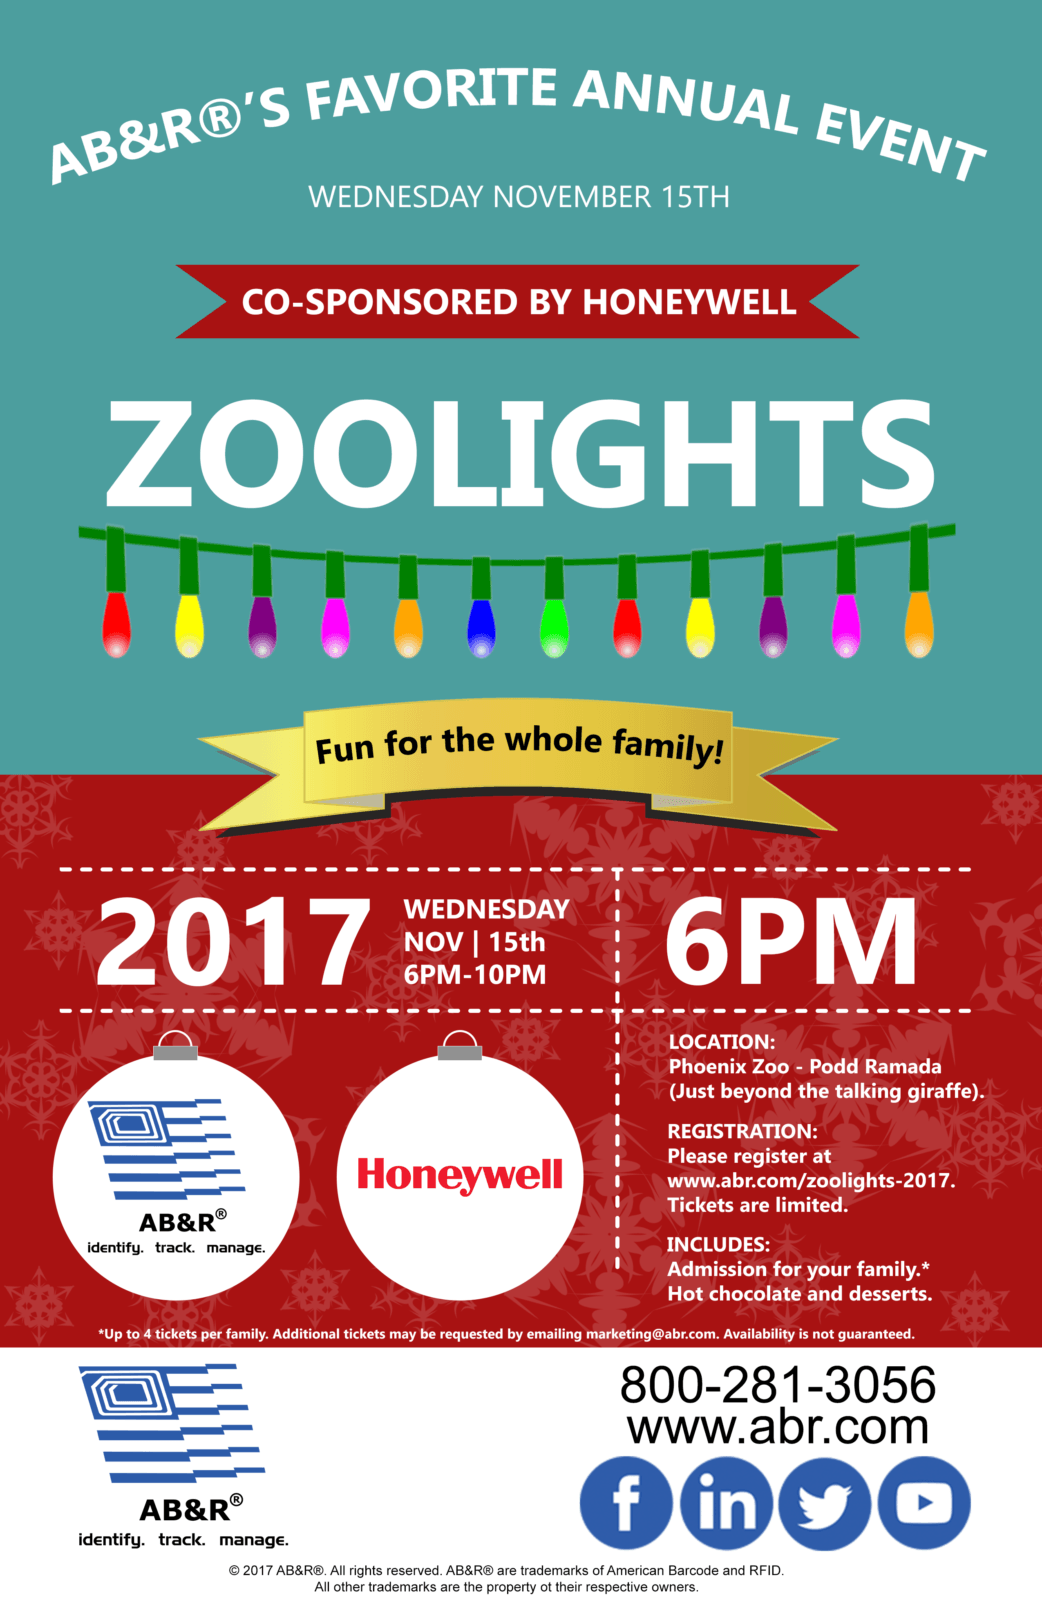 ABu0026R® And Honeywell Cordially Invite You And Your Family To Join Us For An  Evening At ZooLights.